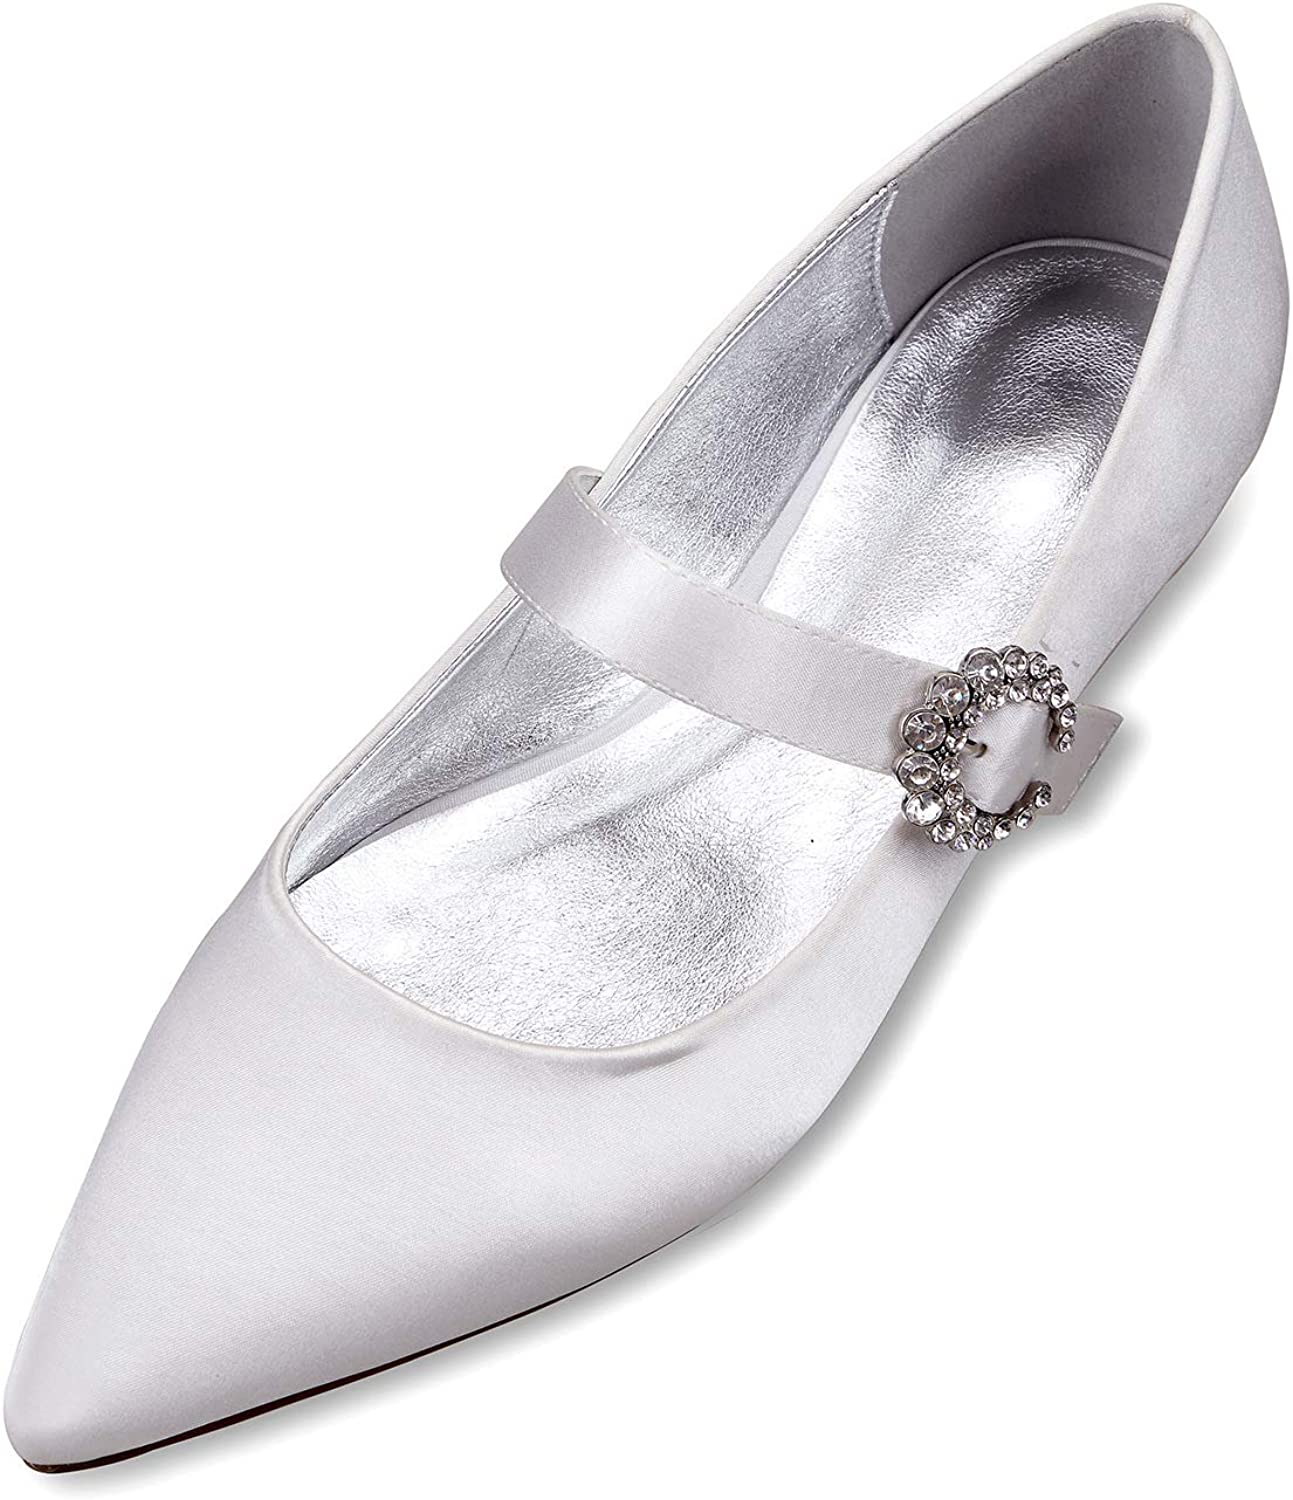 LLBubble Women Comfort Flat Satin Wedding Bride shoes Pointed Toe Strap Formal Party Dress Pumps 5047-10